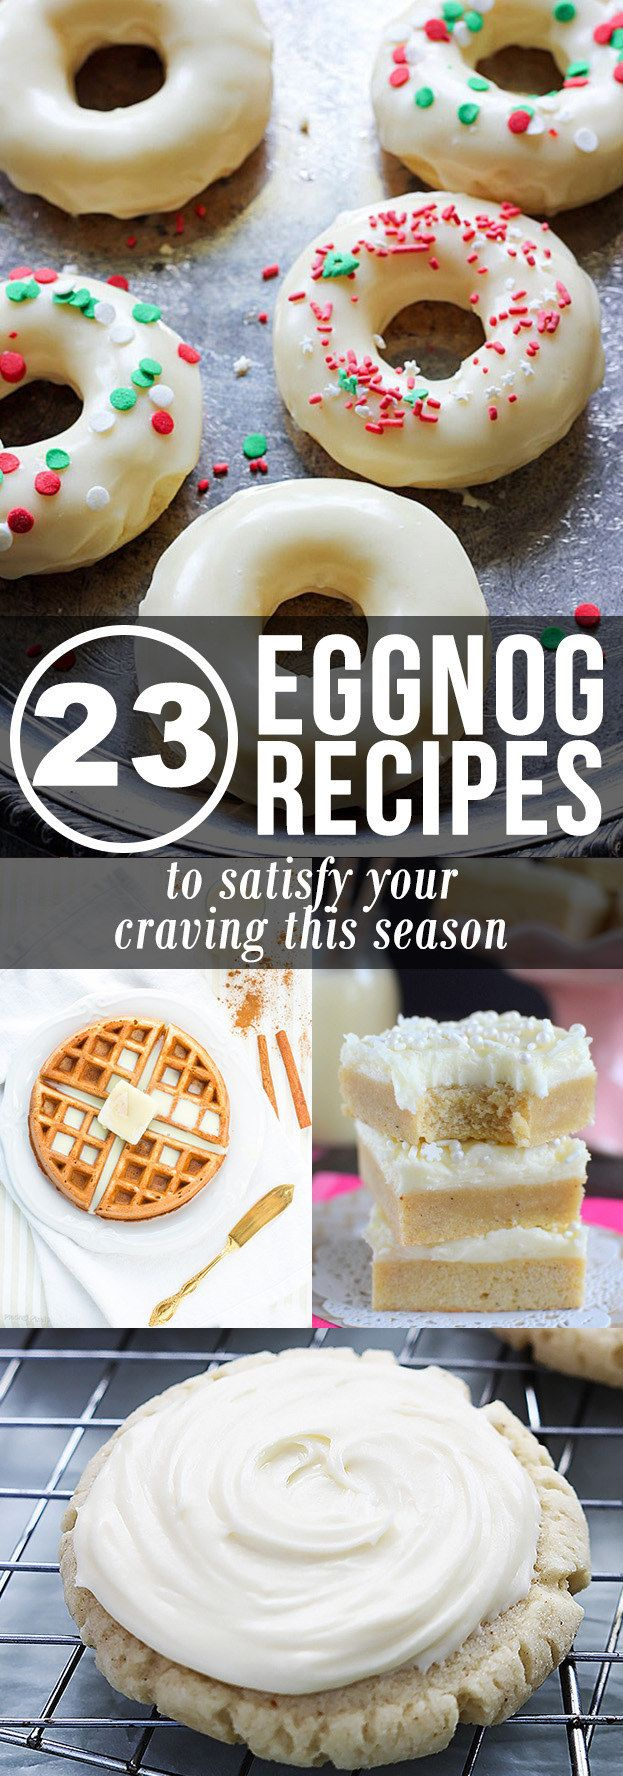 23 Eggnog Recipes To Satisfy Your Craving This Season - delicious eggnog recipes, from donuts, to pancakes, to cupcakes and more!